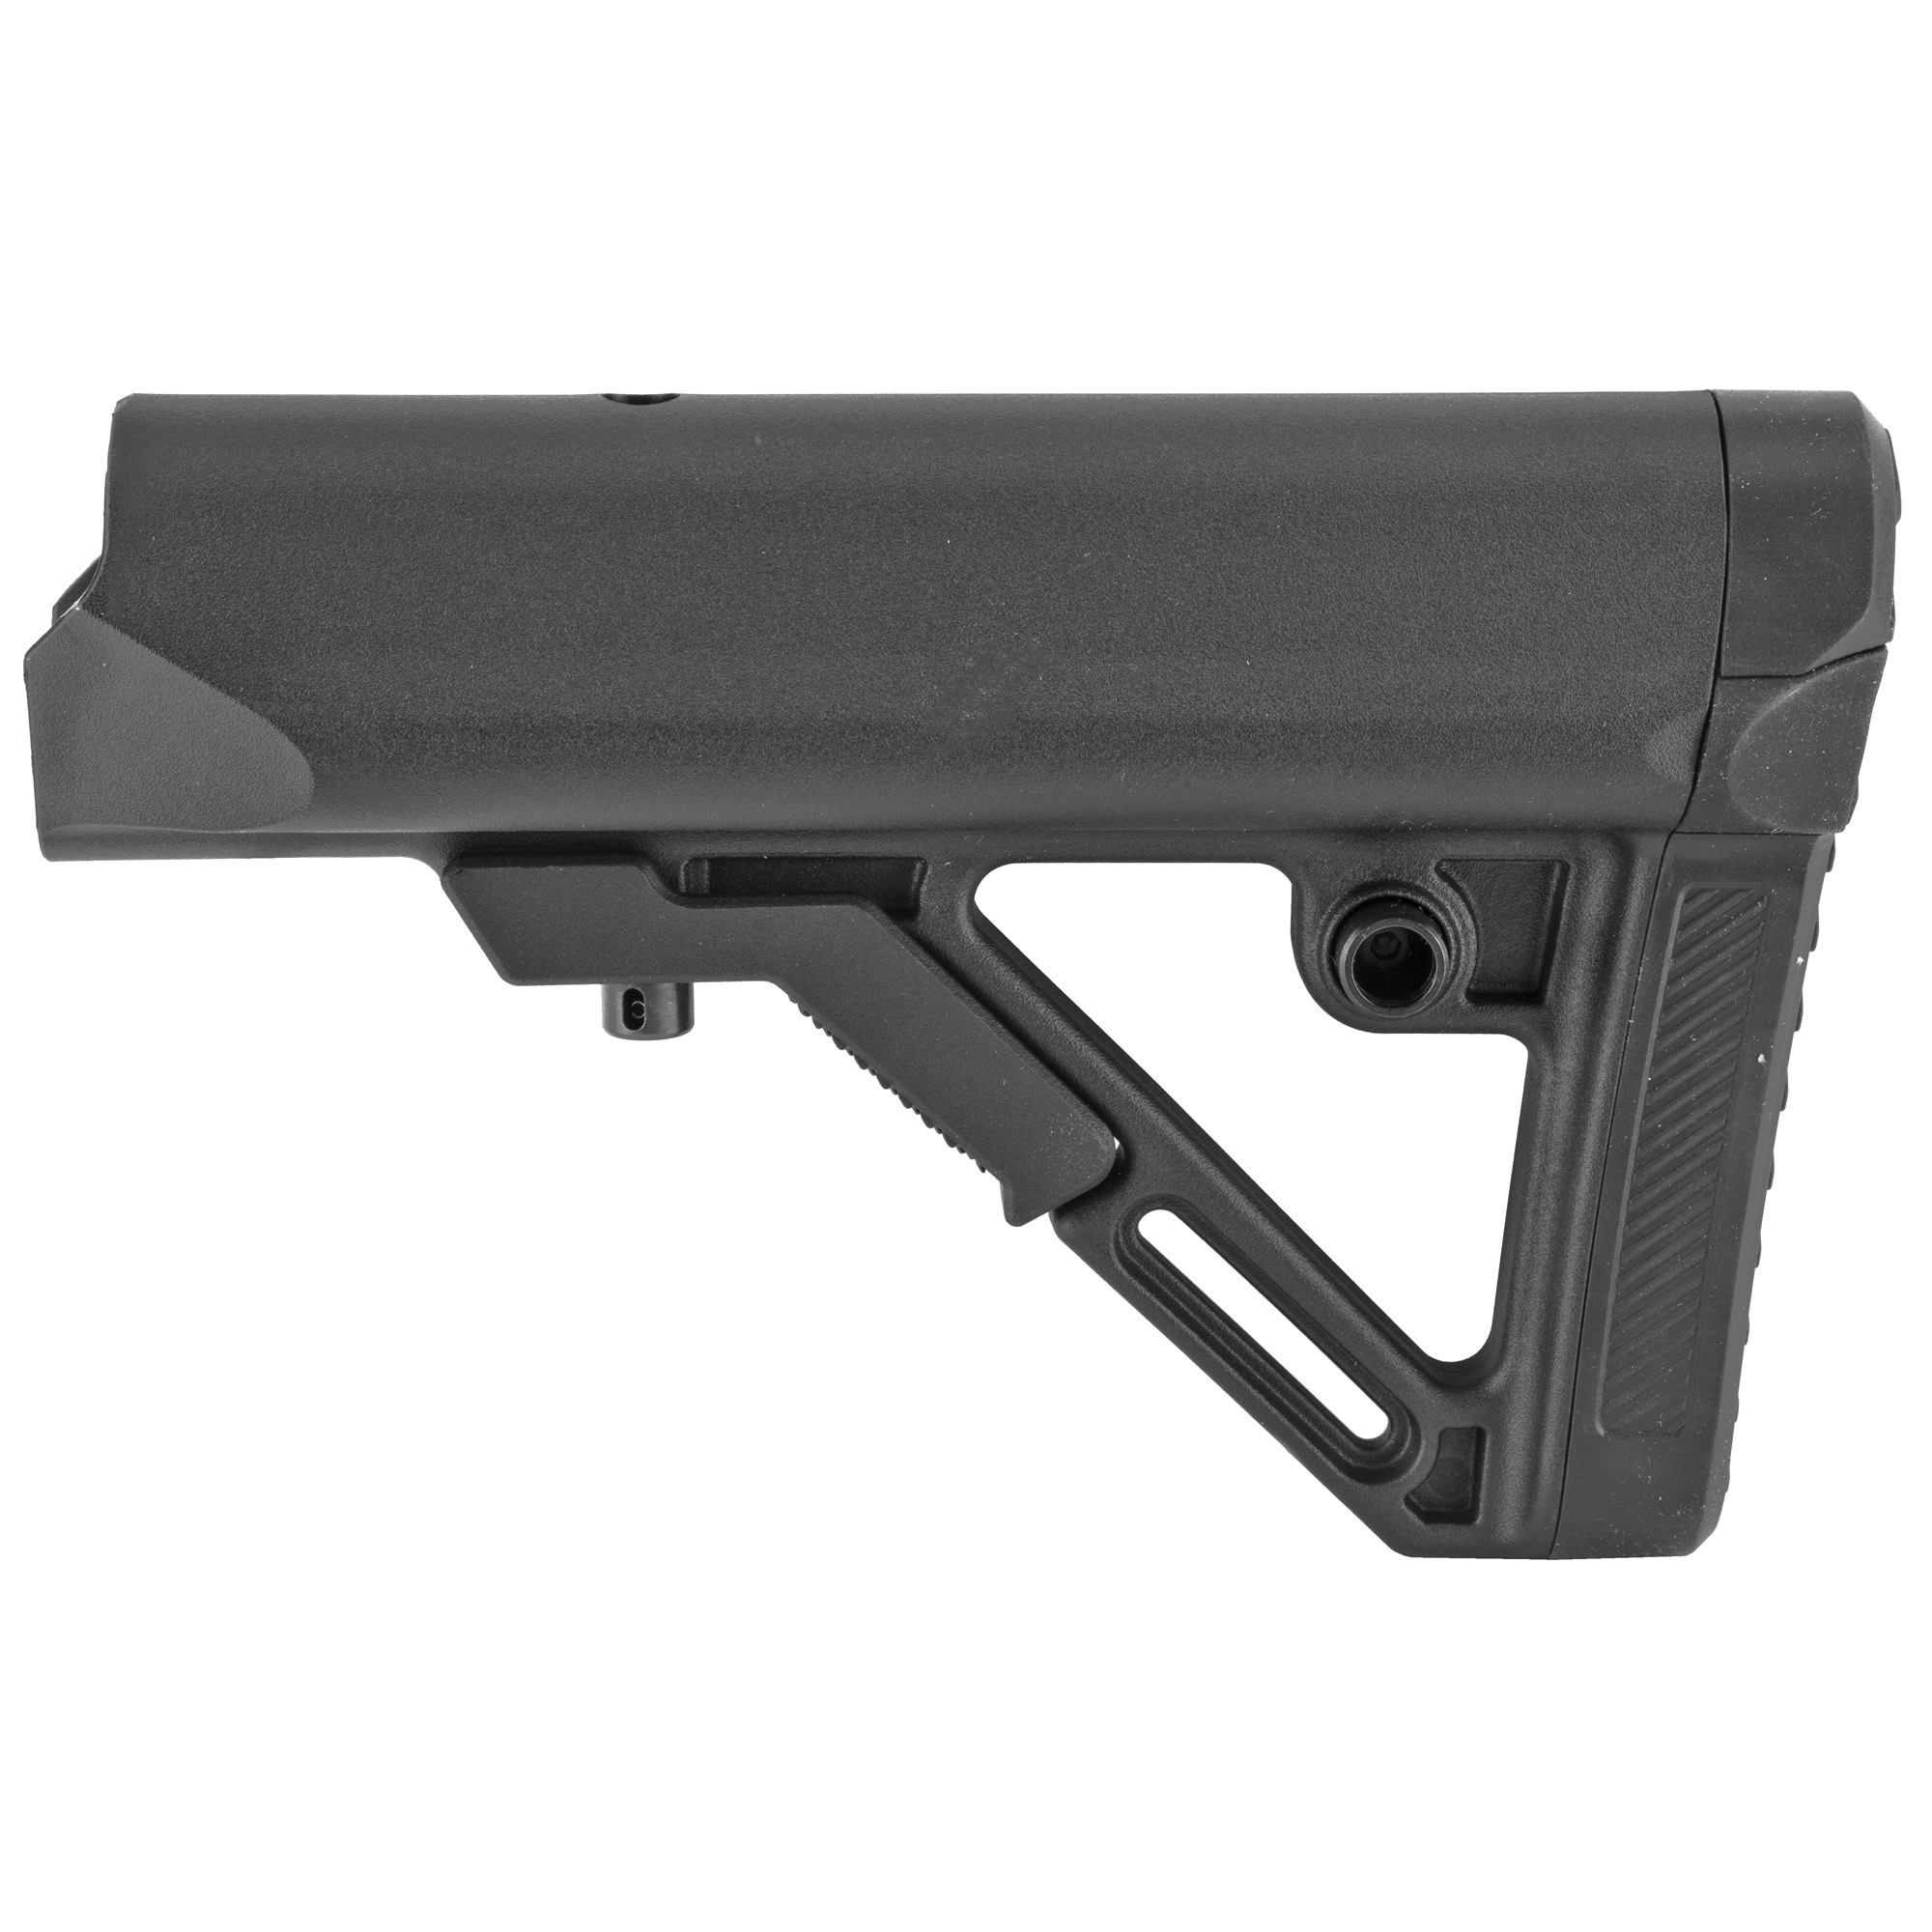 """The UTG PRO Model4 Combat Ops S1 Mil-Spec Butt Stock is a collapsible"""" AR/M4 style stock constructed of weather proof and rugged high impact polymer. This 6 position stock is designed for heavy duty operations and is made with the tightest tolerances for the most secure fit and silent performance. It has a thick rubberized recoil pad"""" reversible QD sling swivel housing"""" and an ambidextrous sling loop attachment. Chamfered edges and slanted cheek rest provide the comfort you're looking for."""